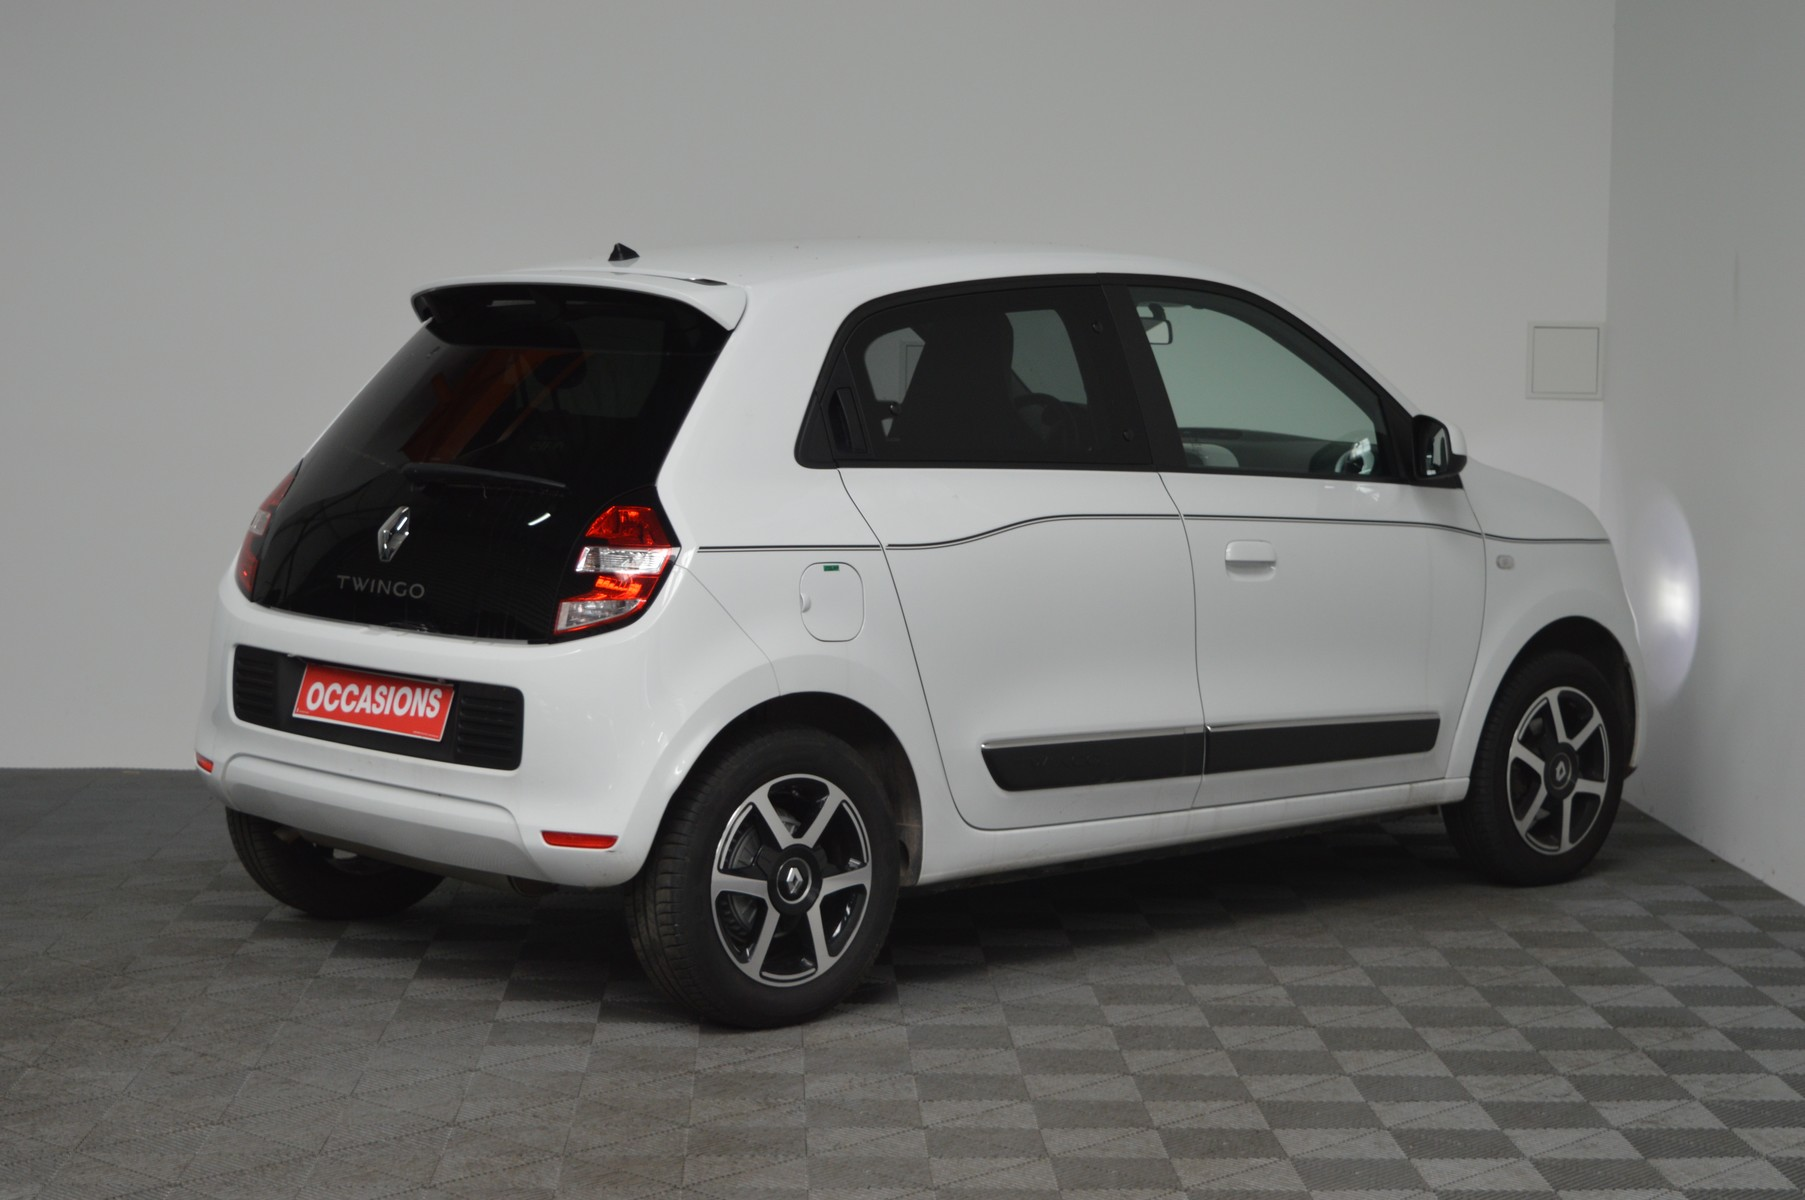 RENAULT TWINGO III 2019 à 9400 € - Photo n°3